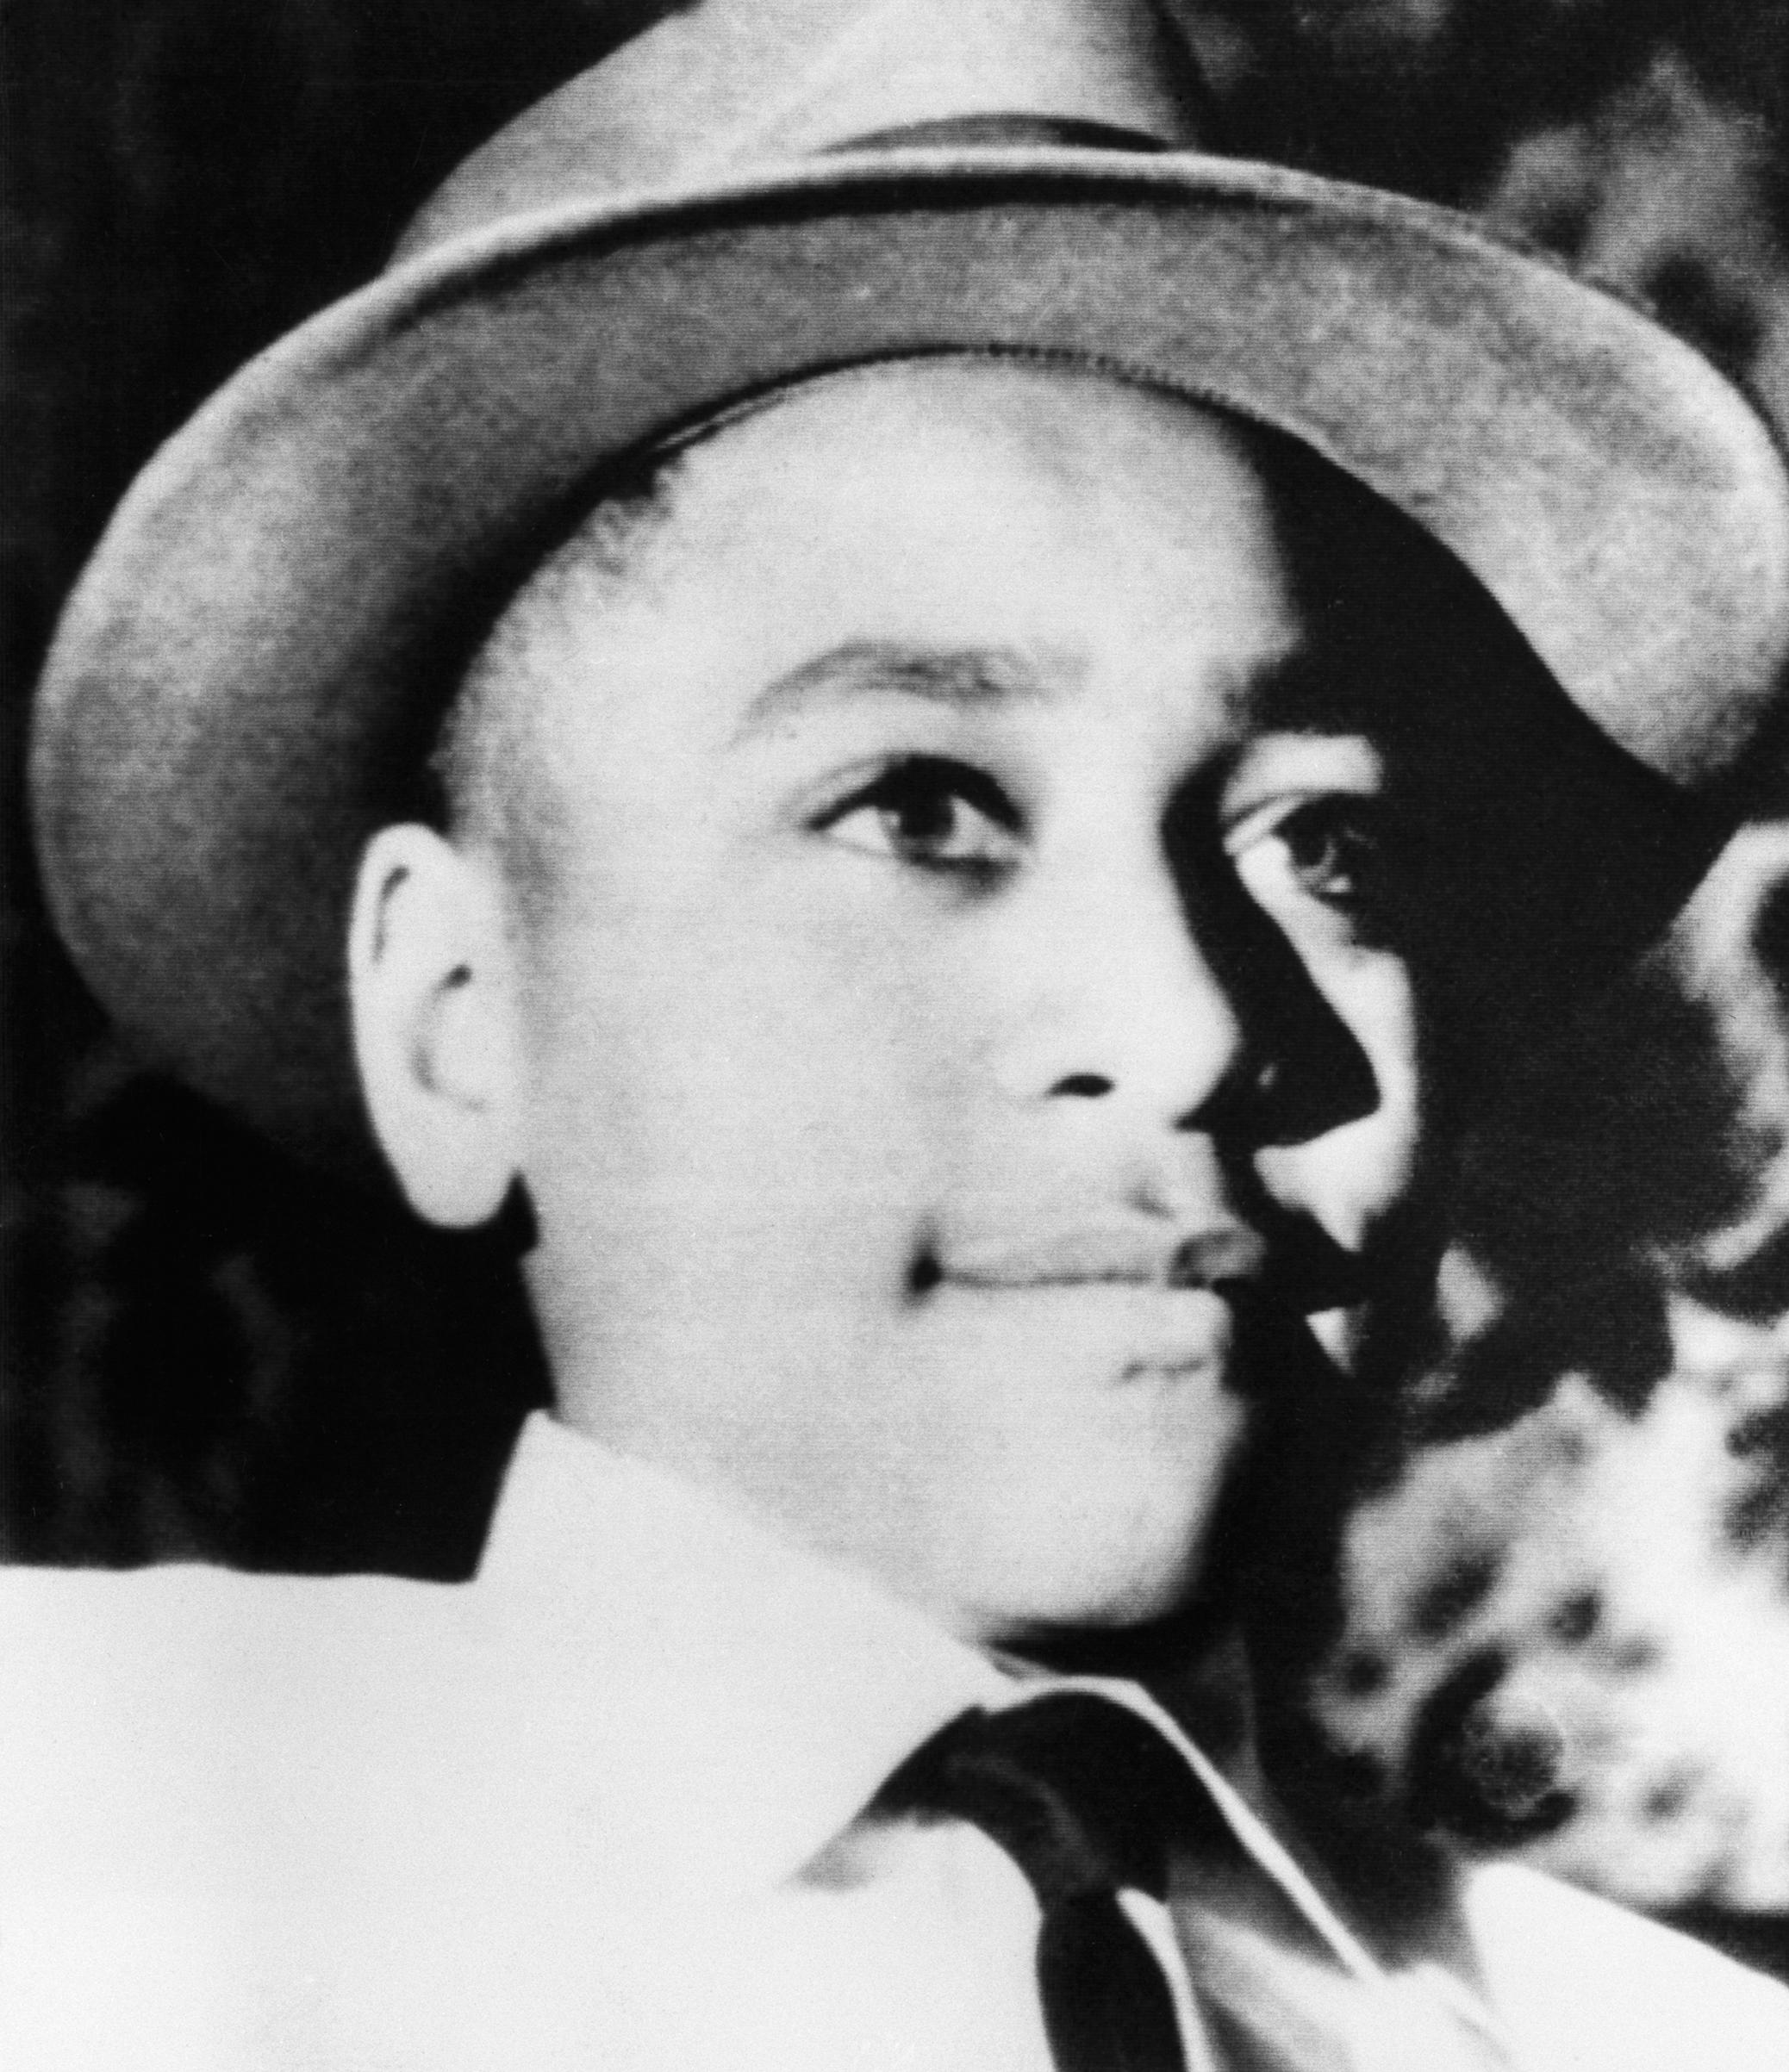 Emmett Till's Death Could Easily Have Been Forgotten. Here's How It Became a Civil Rights Turning Point Instead